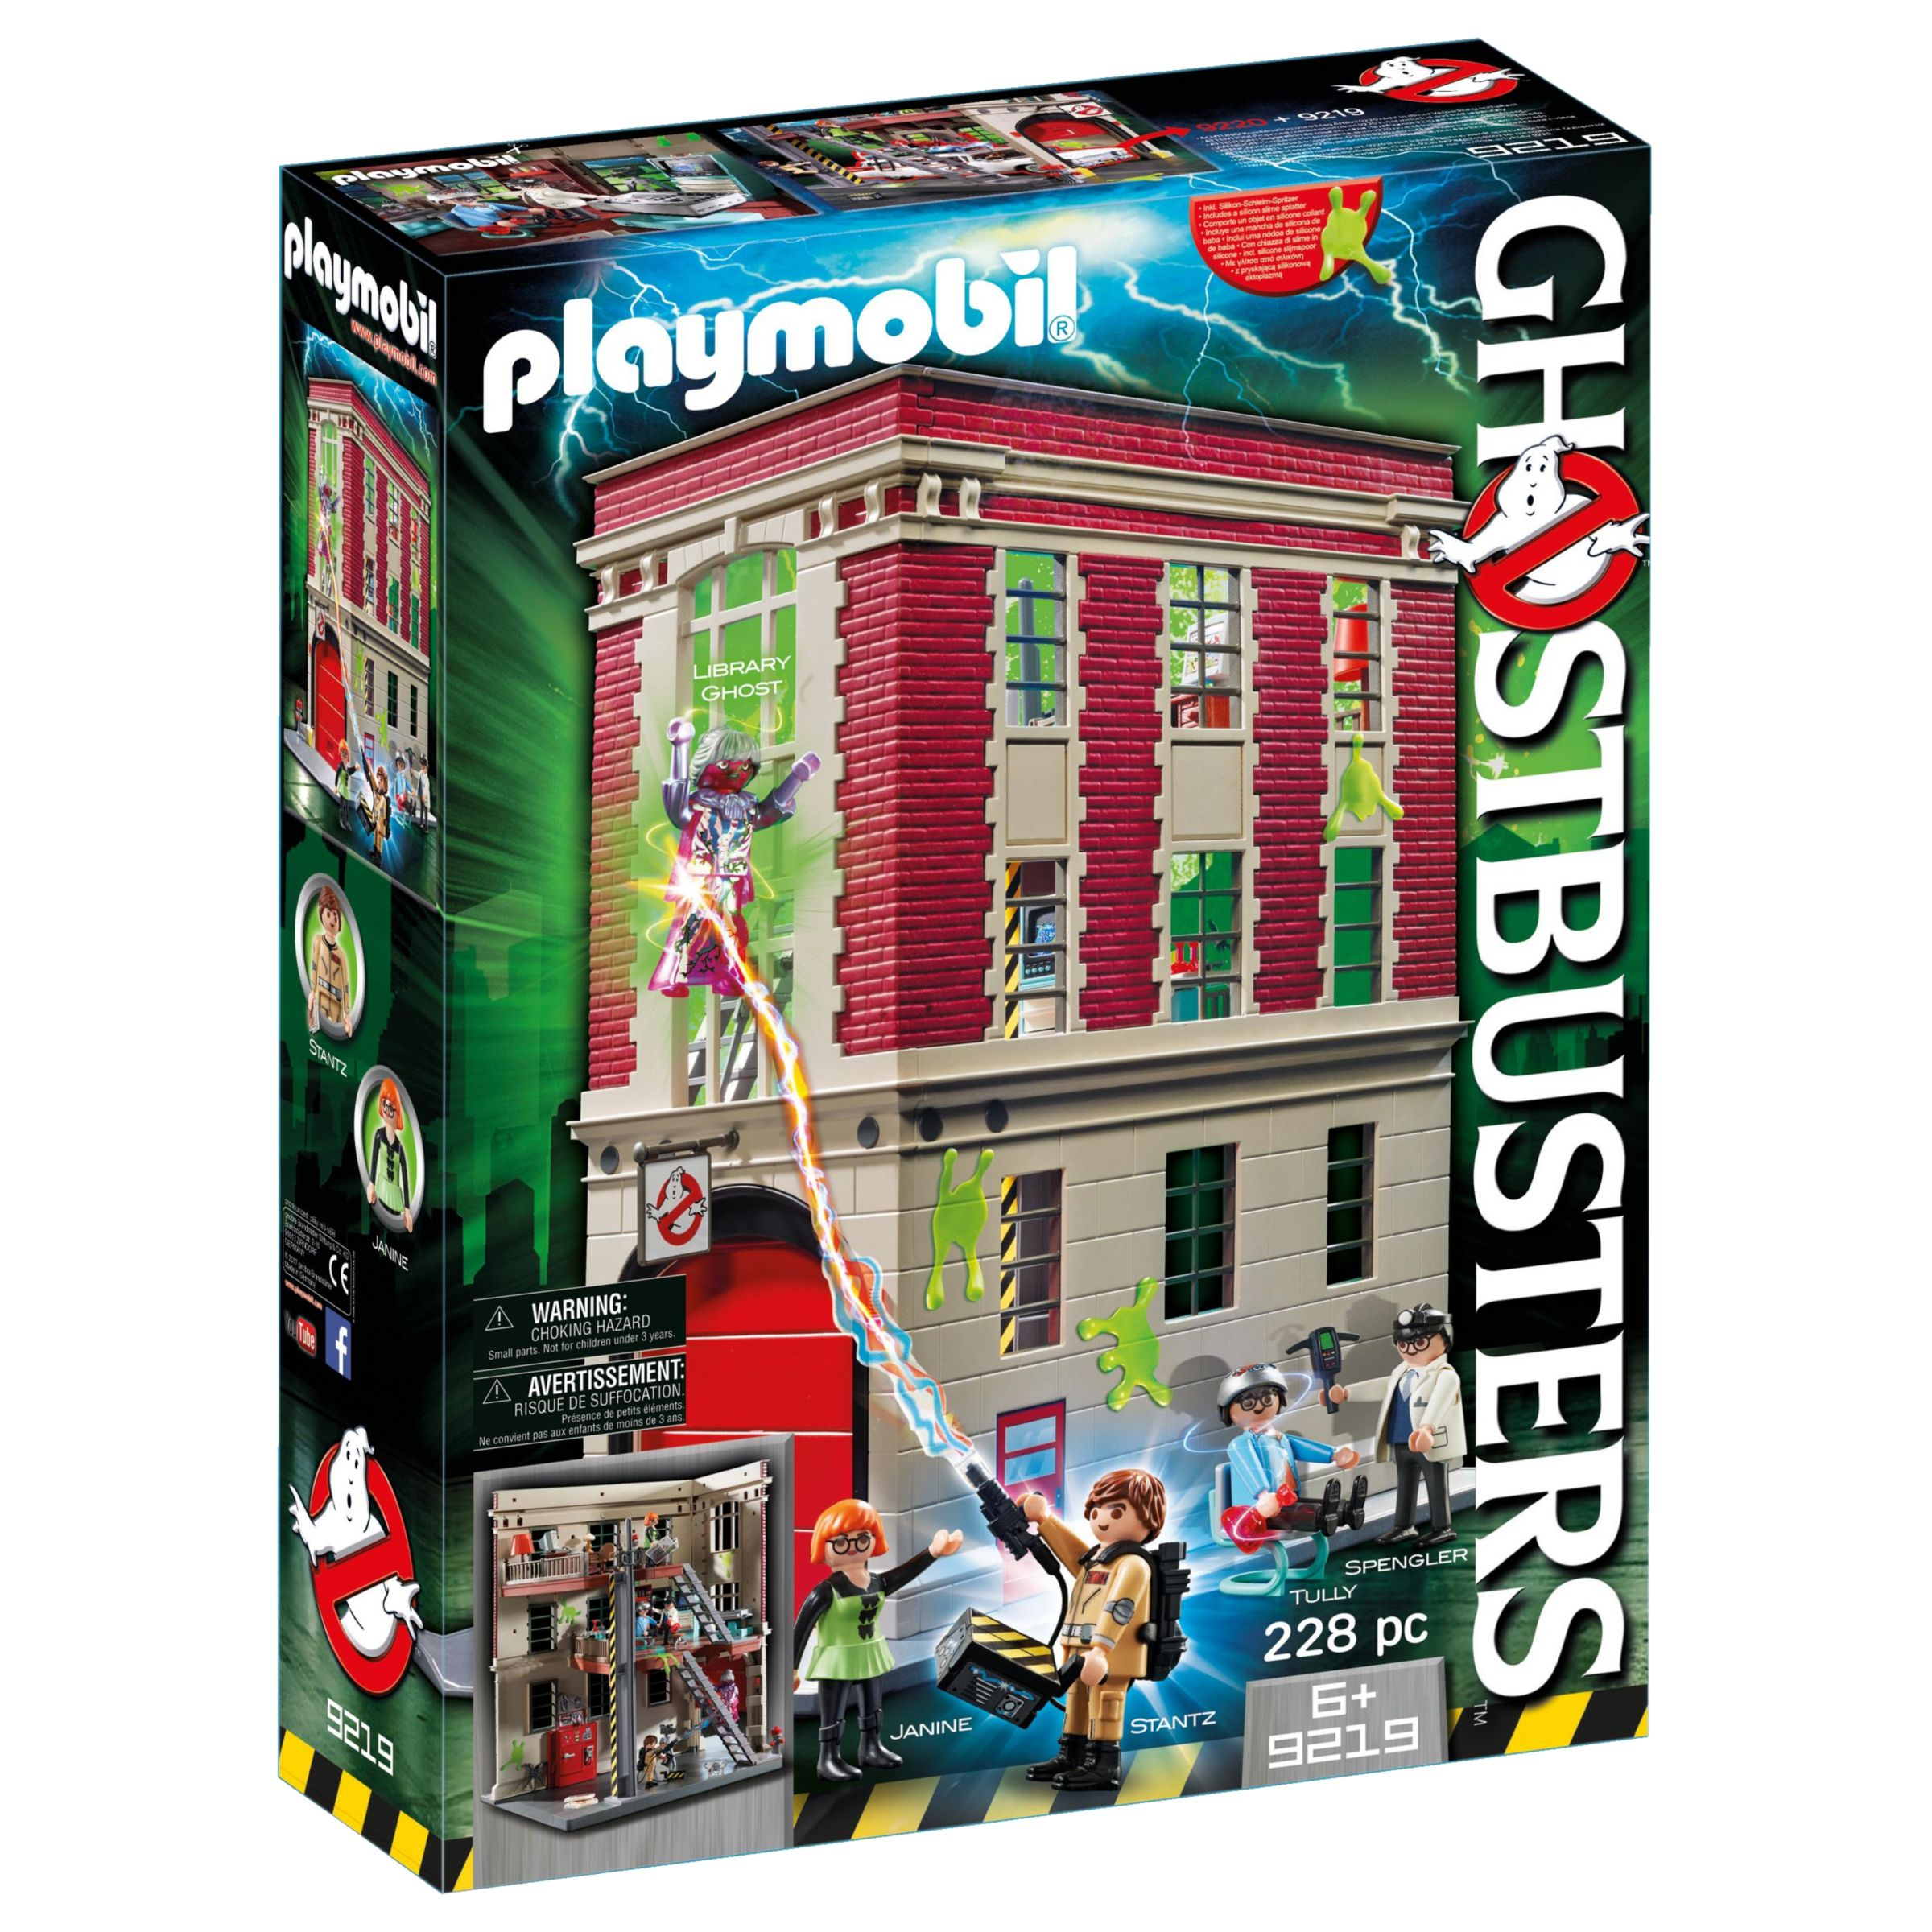 PLAYMOBIL Playmobil Ghostbusters Fire House Headquarters Play Set